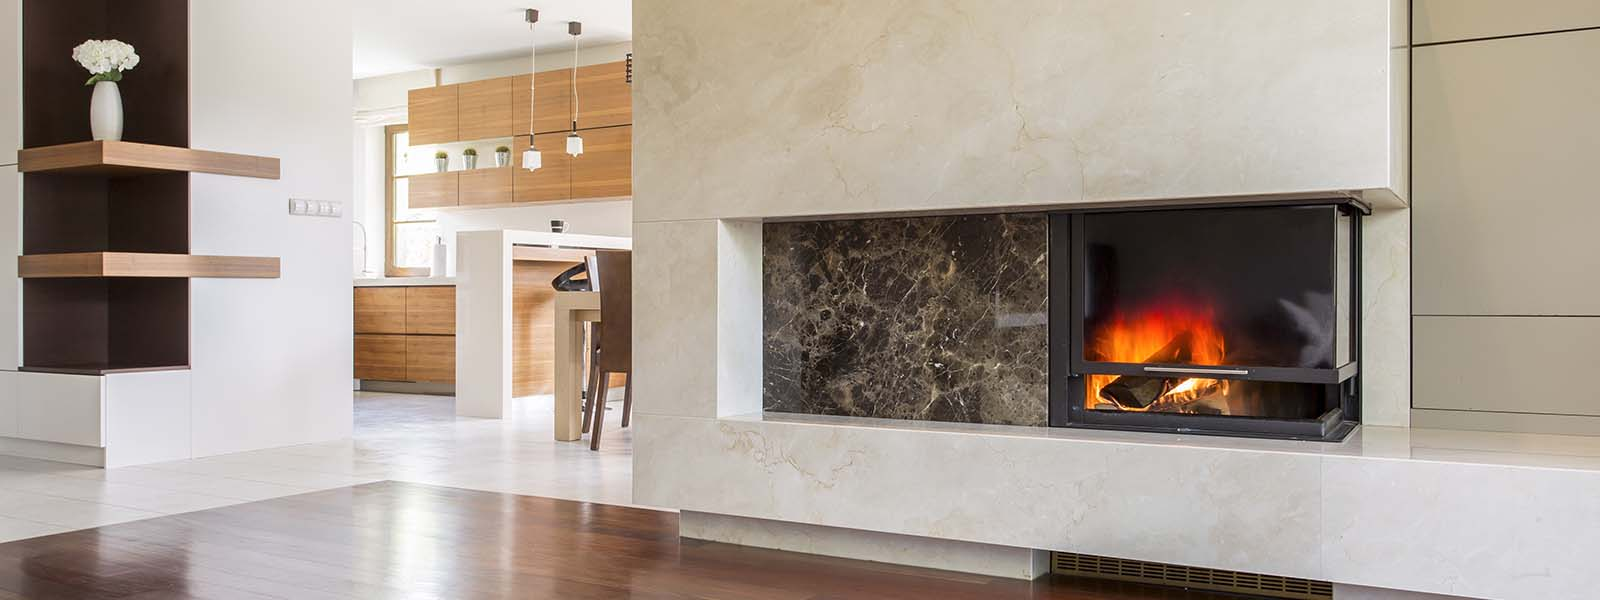 A fireplace that runs off of gas. It is not a significant source of heat.